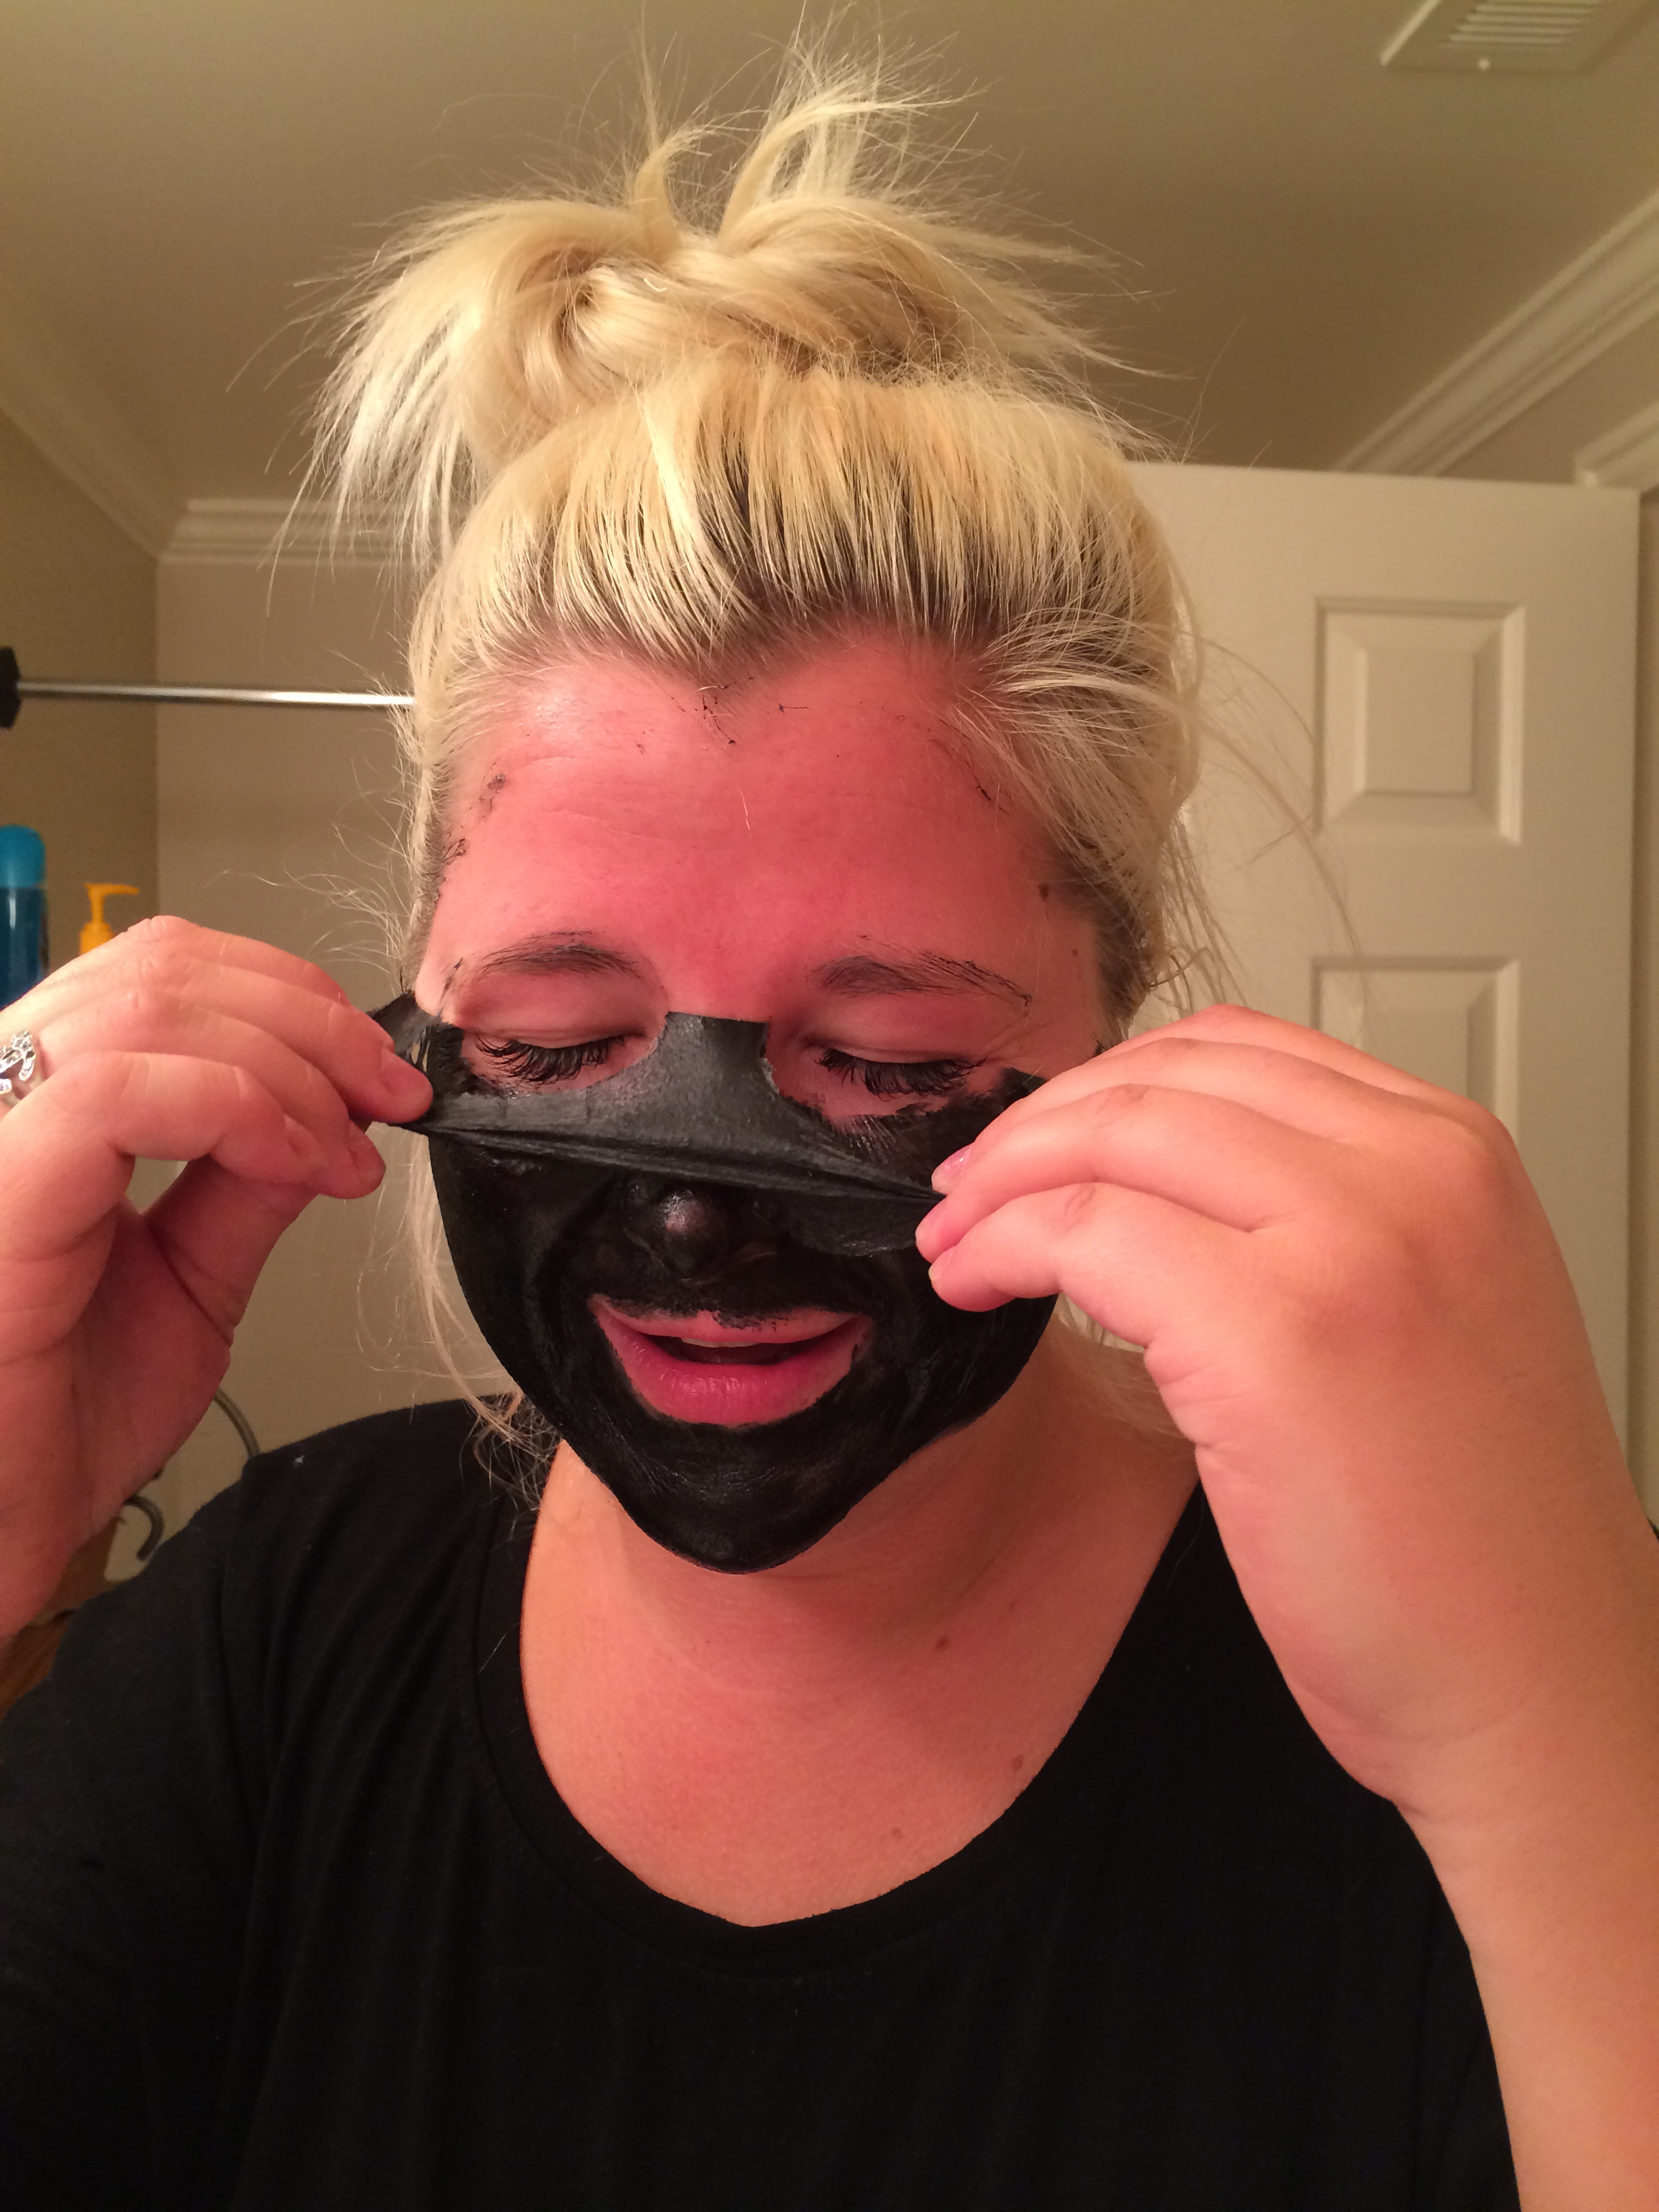 Boscia face mask July 21, 2014 913